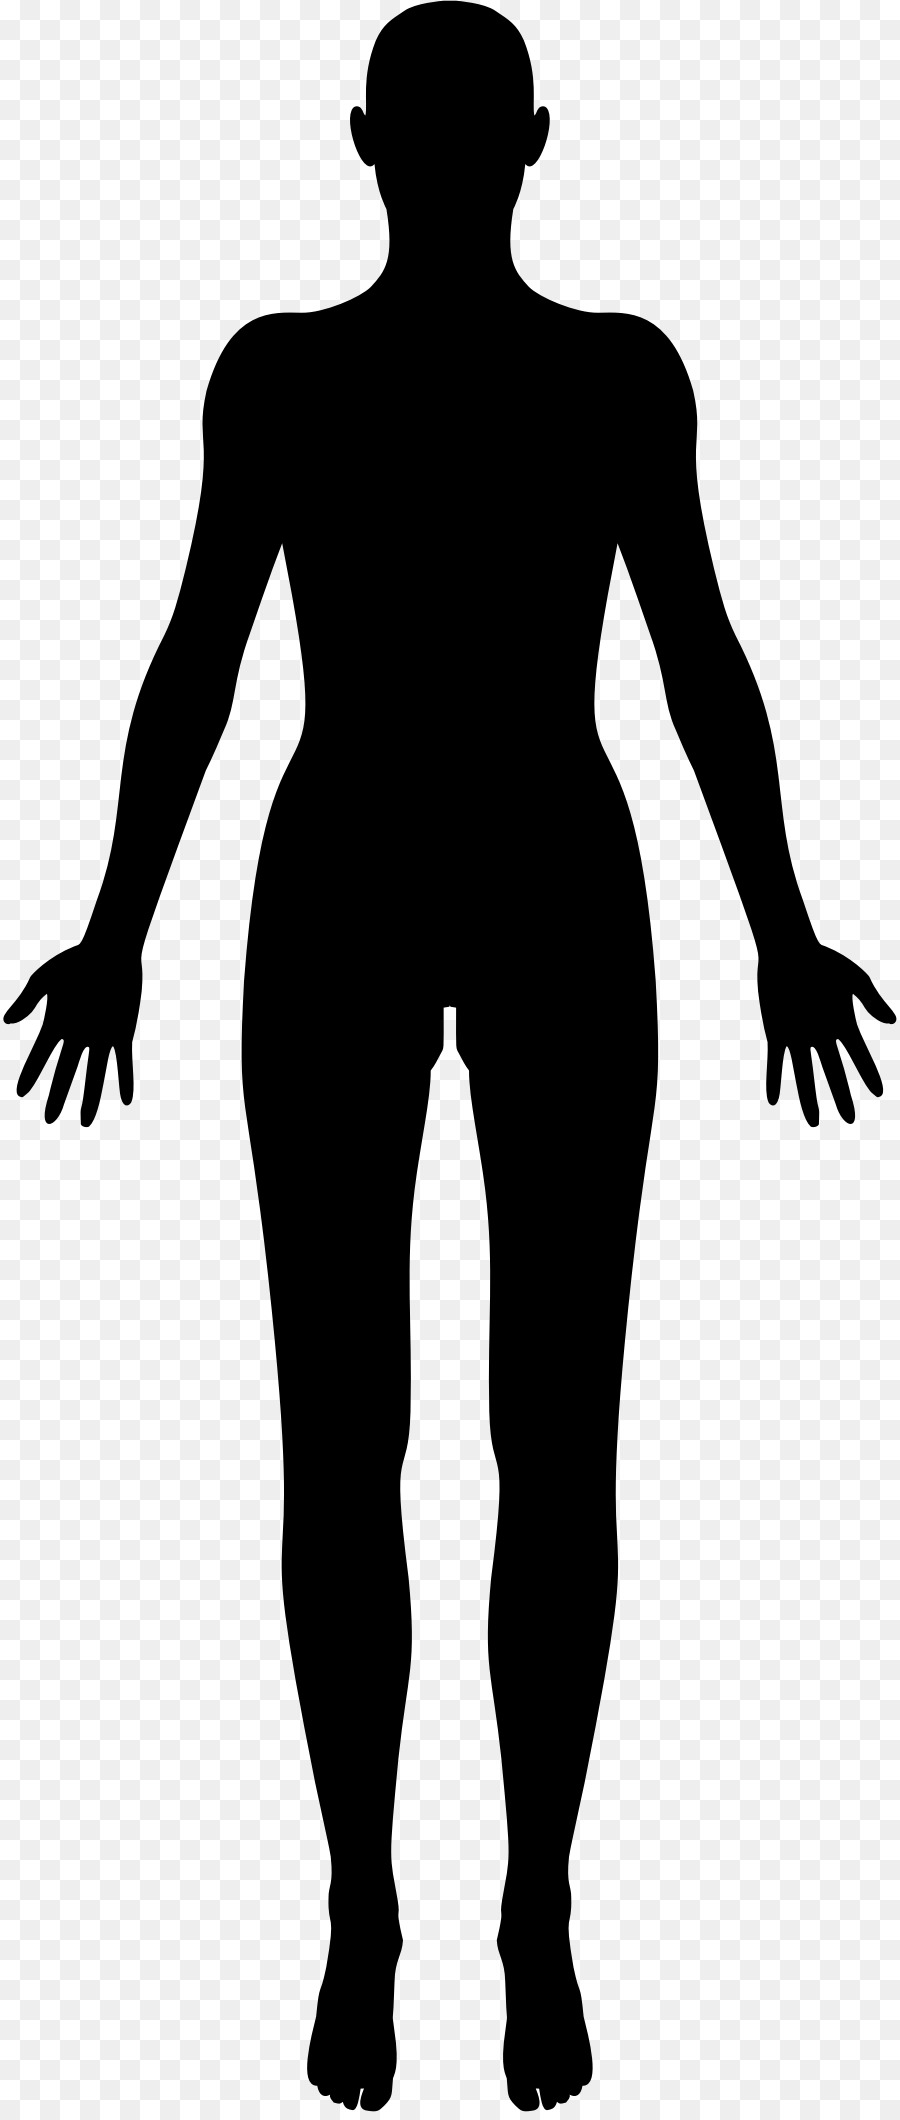 c117f2ca4 Female body shape Human body Silhouette Clip art - female png ...